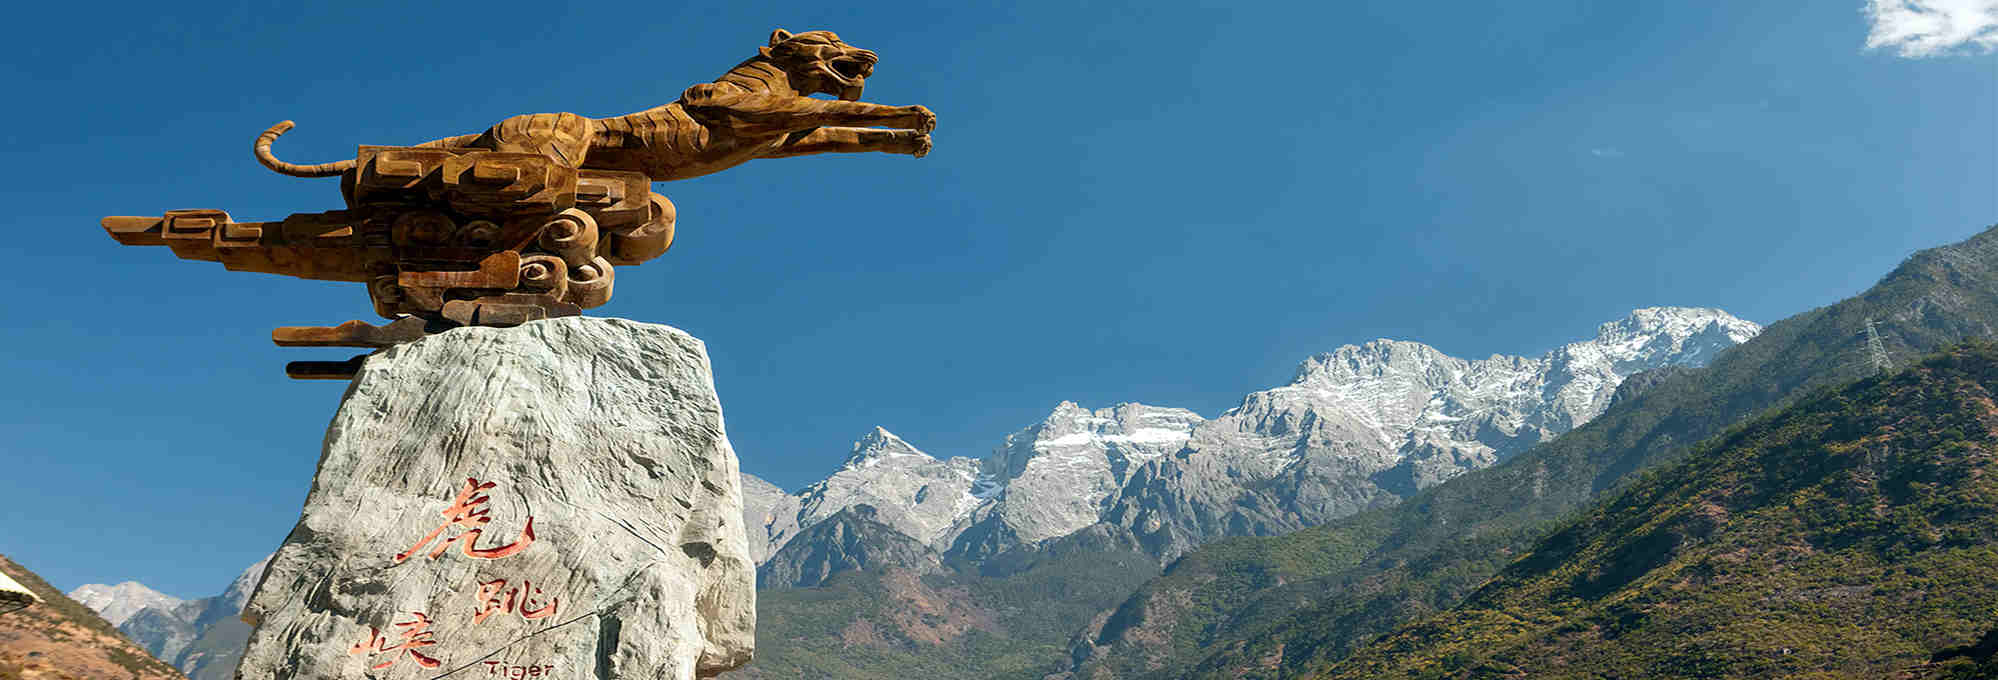 One-day Tiger Leaping Gorge Hing Tour From Lijiang